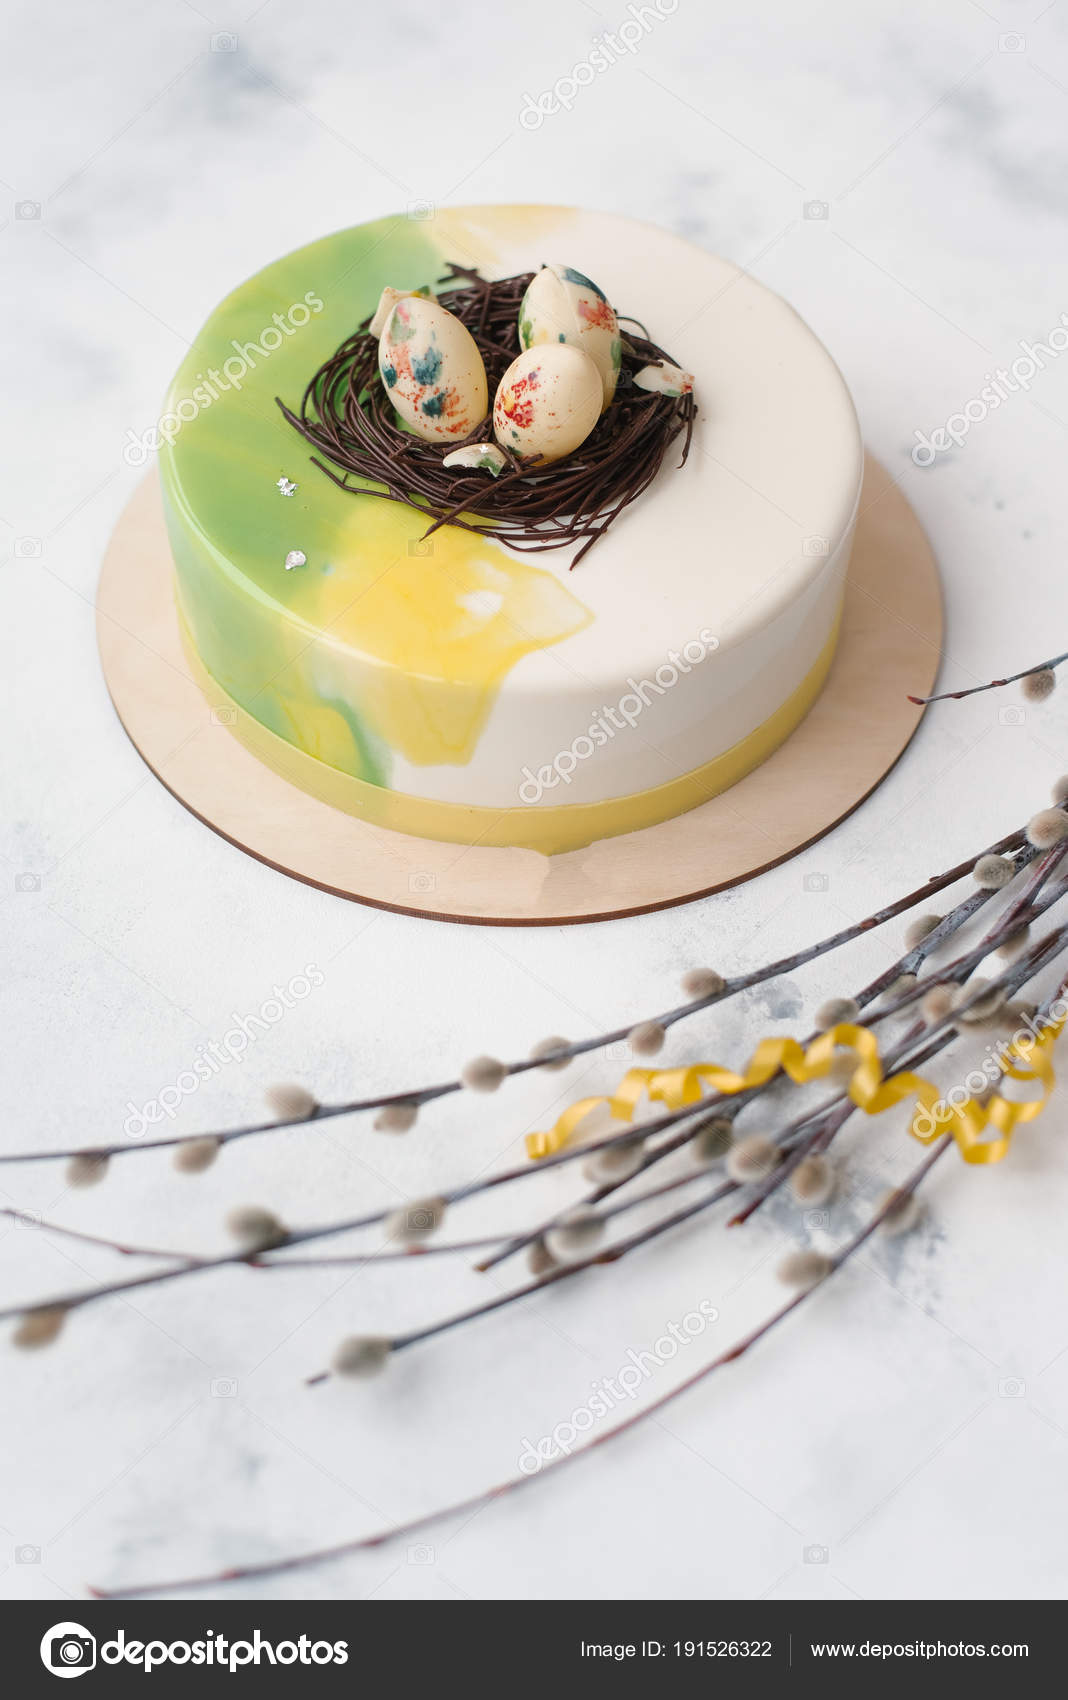 Composition White Green Glazed Cake Eggs Top Willow Branches Marble Stock Photo C Tytbil88 191526322